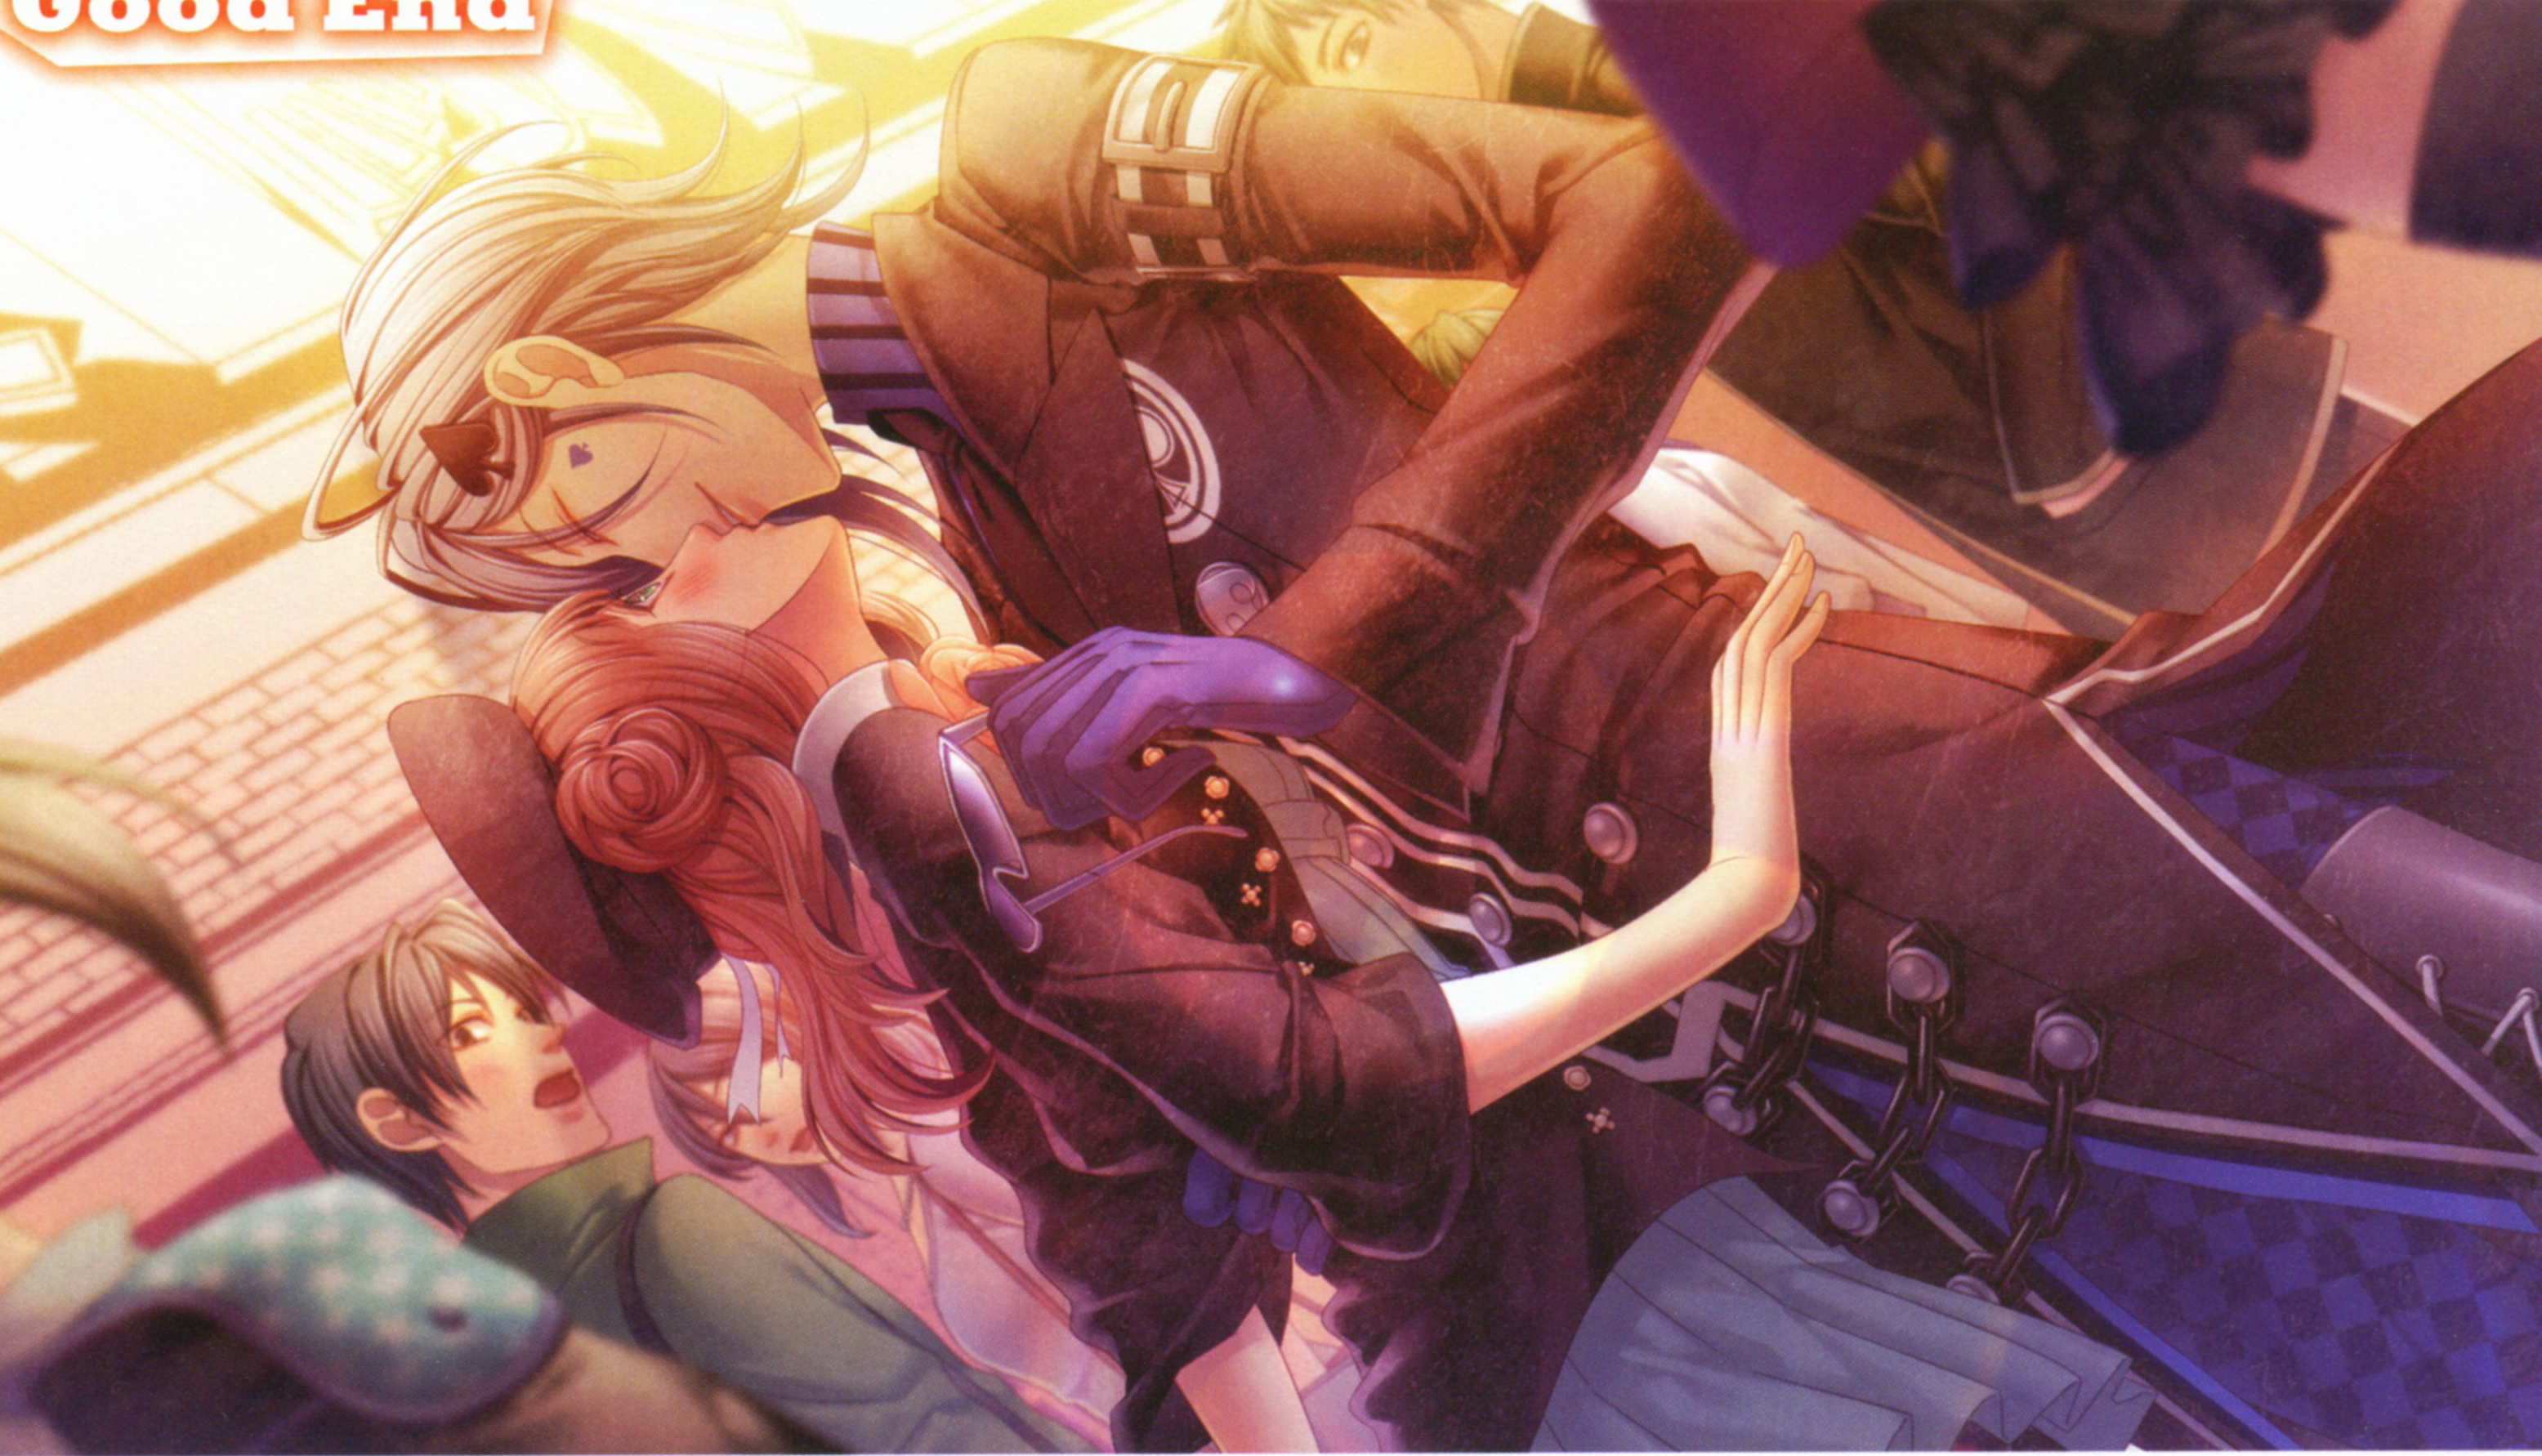 Cgs memories of a riding date